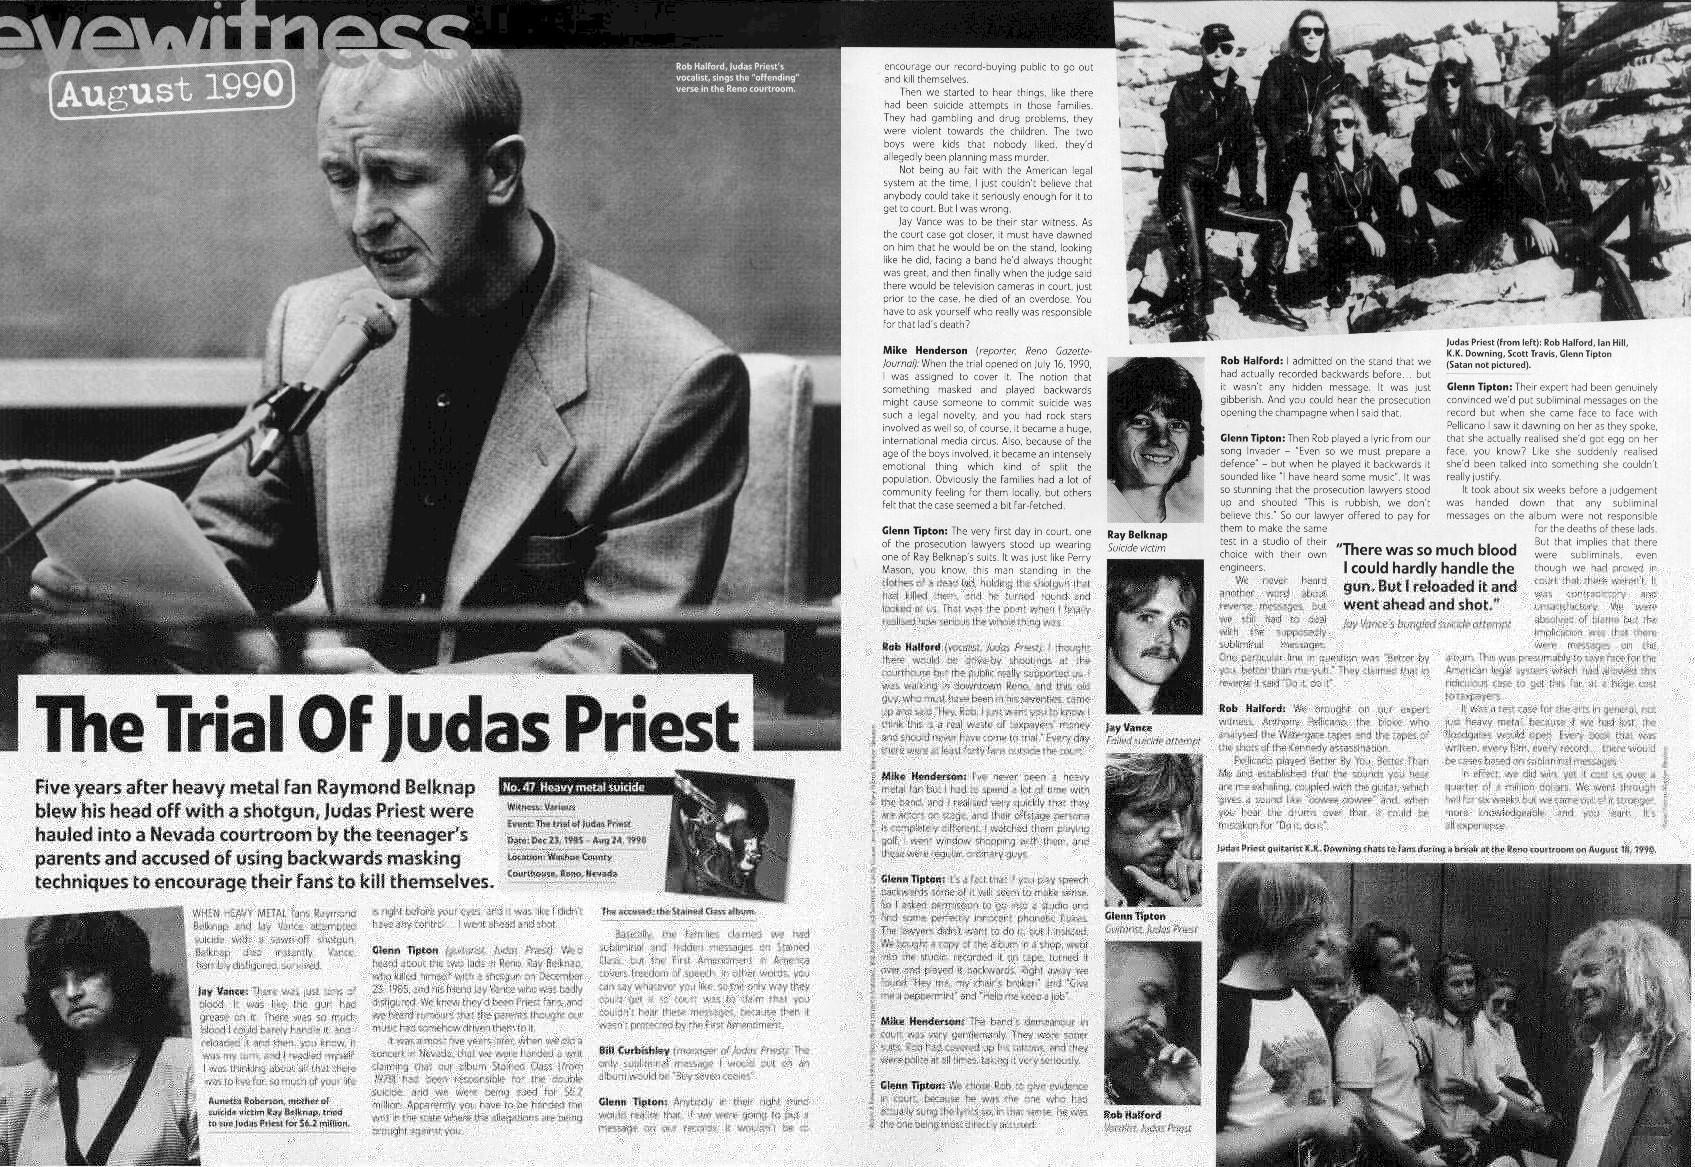 Judas priest article